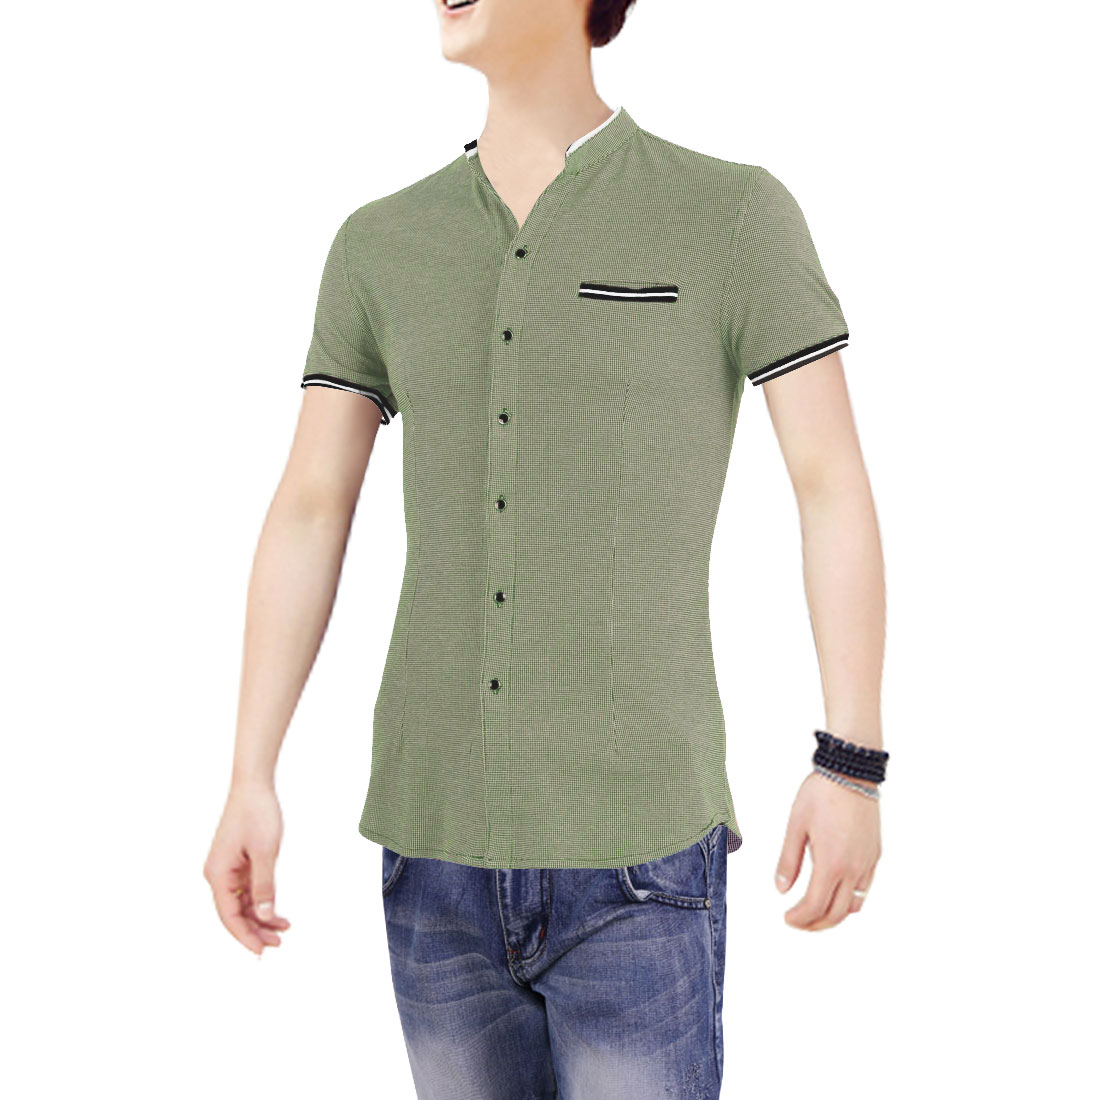 Green M Stand Collar Single Breasted Button Up Short Sleeve Men Shirt